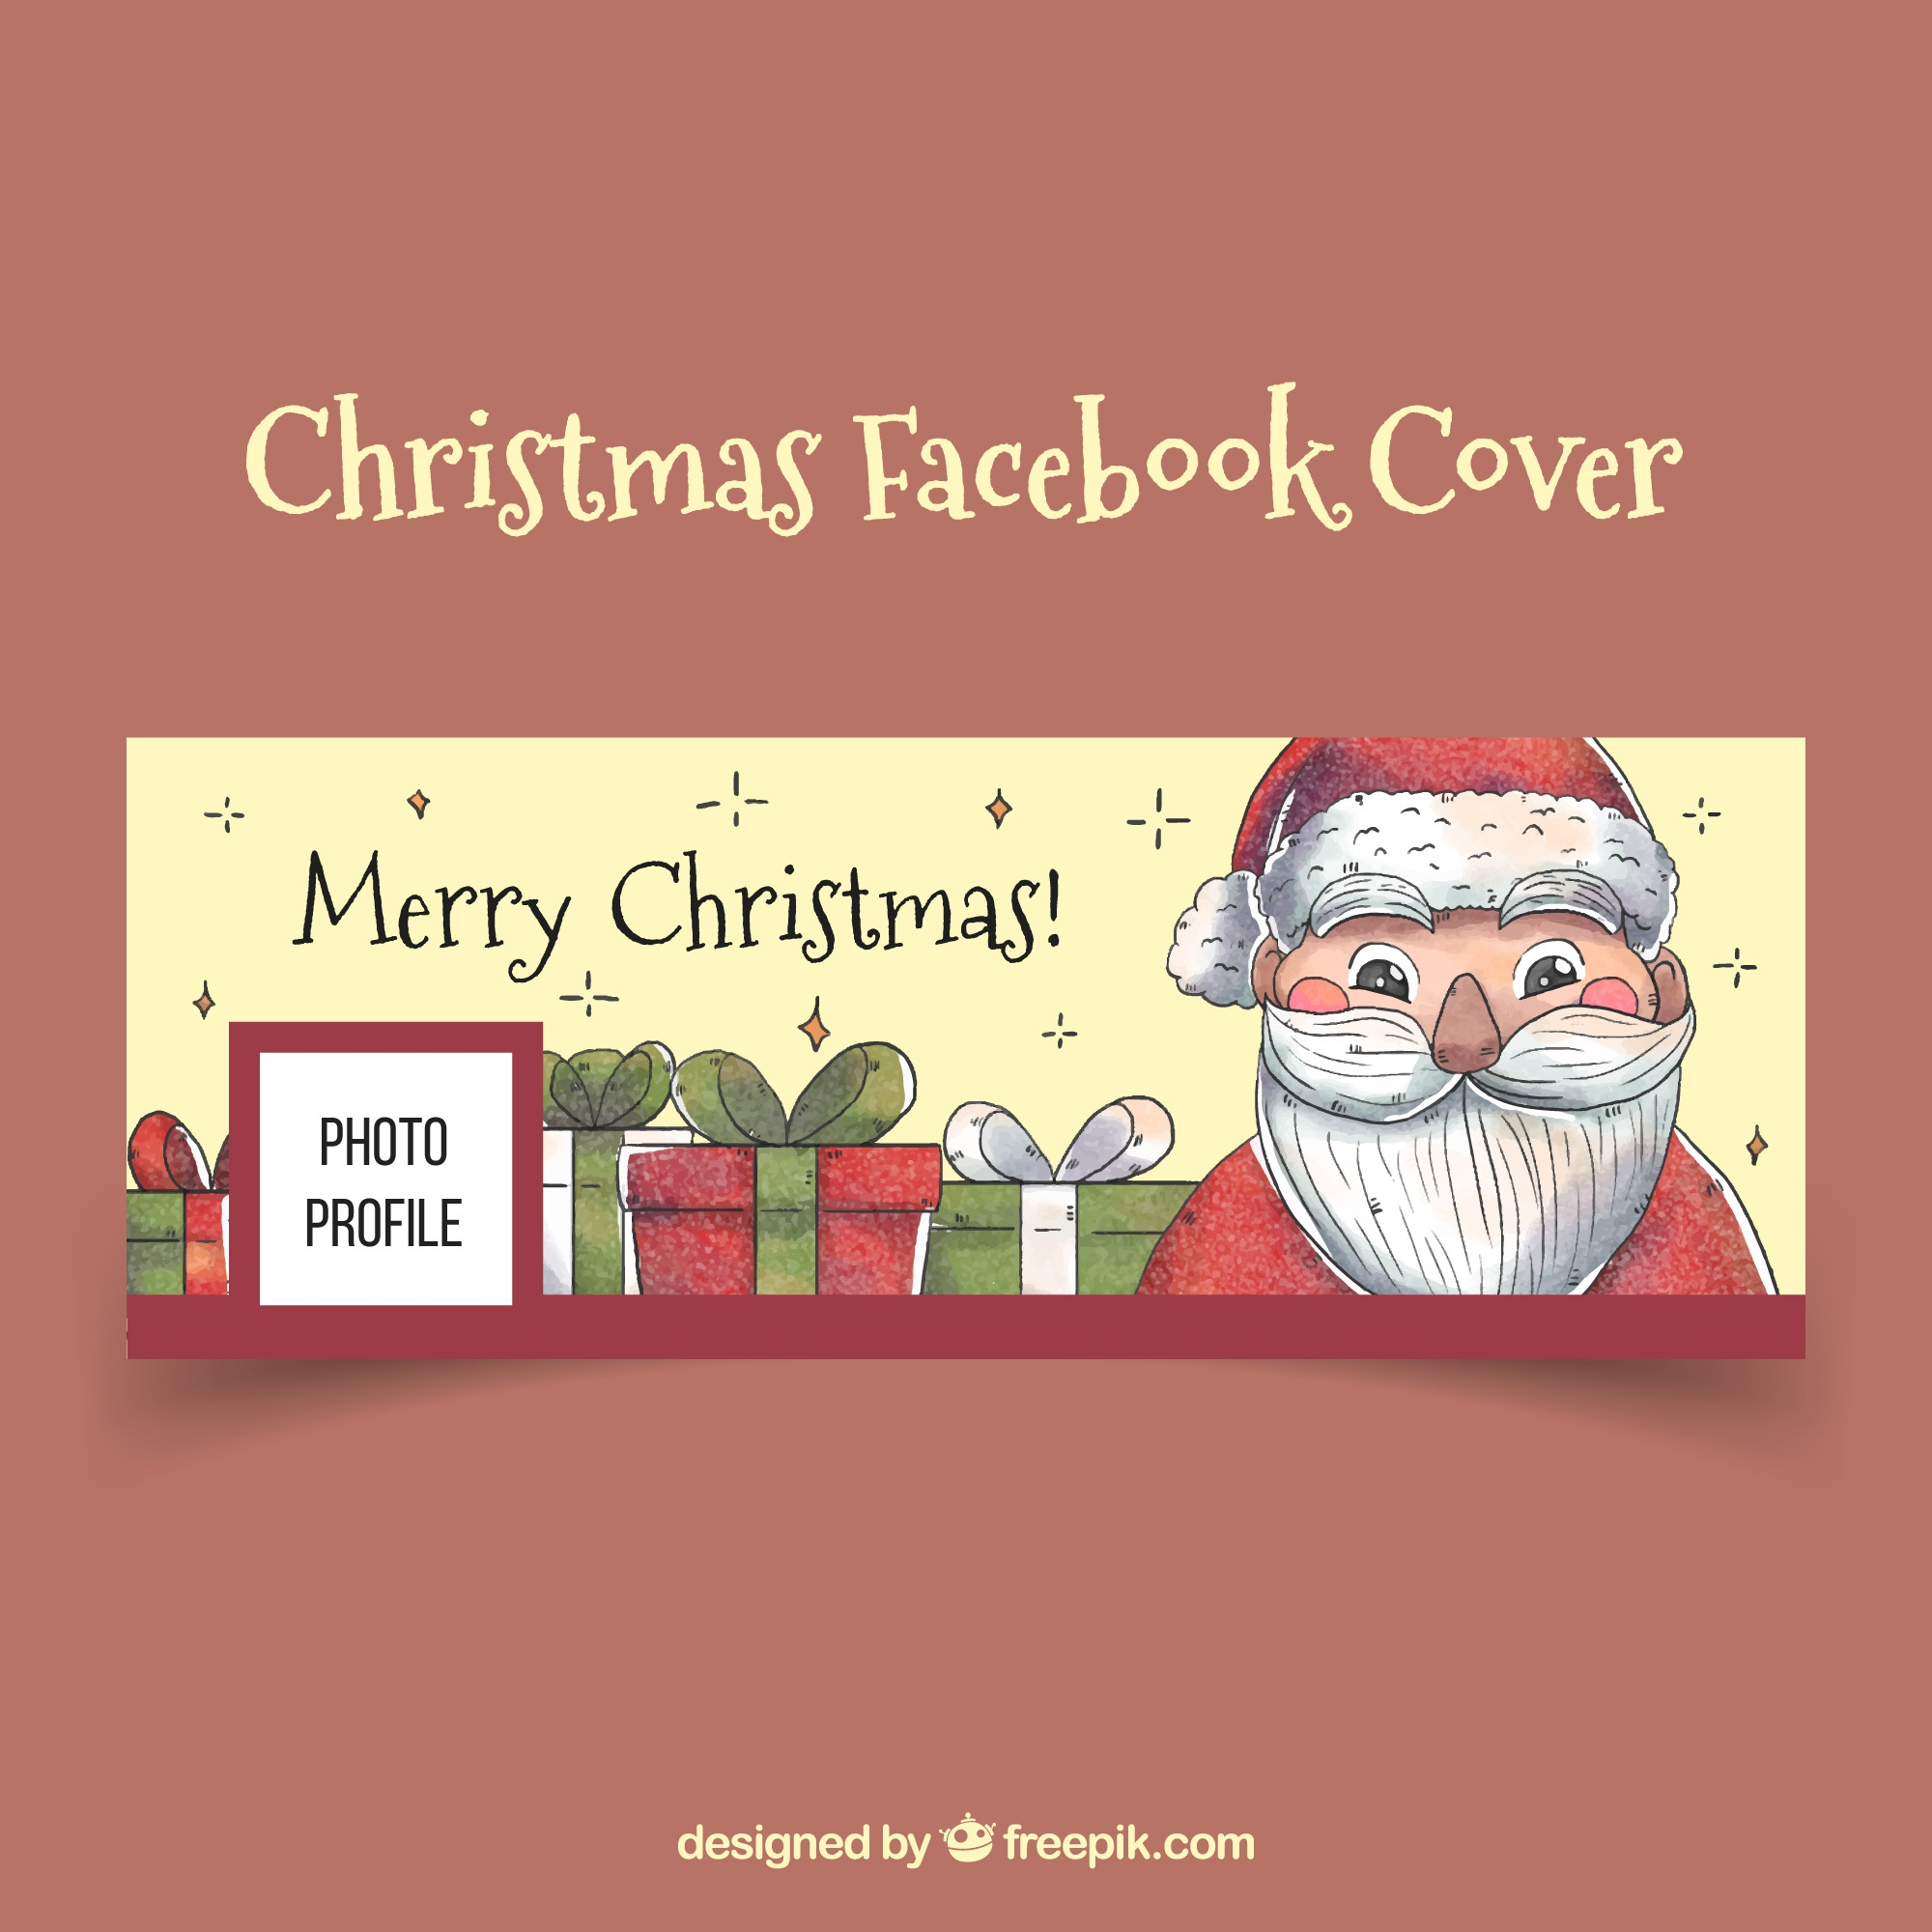 Vintage facebook cover met kerstman